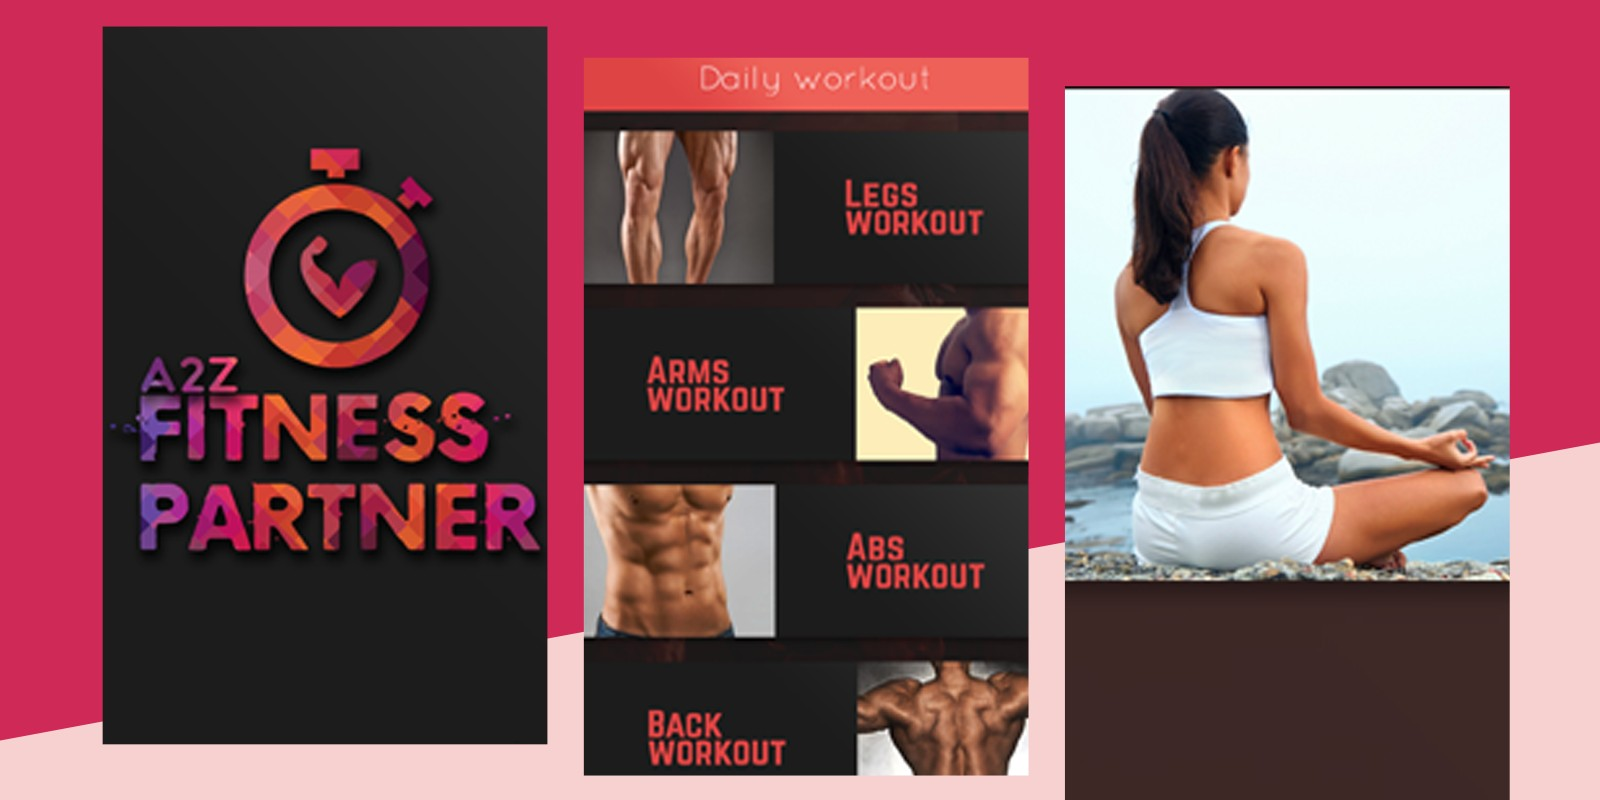 A2z Fitness Partner - Android App